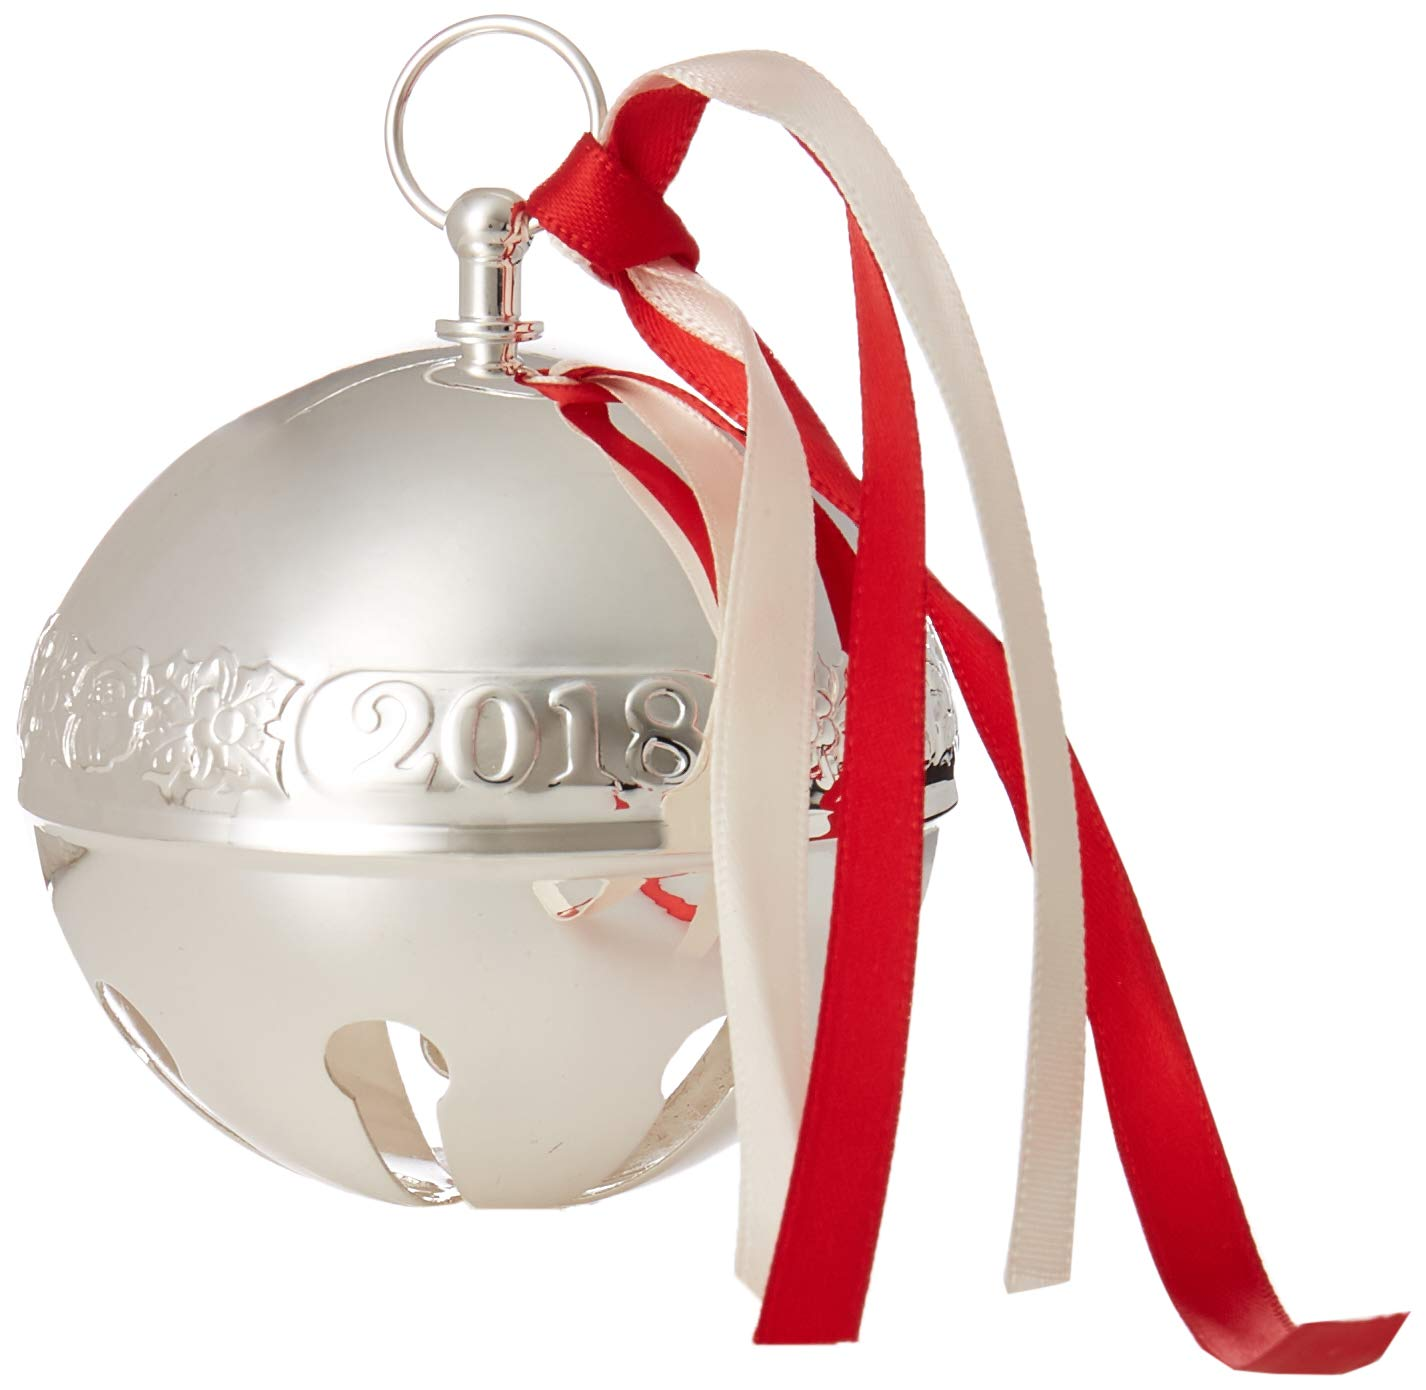 Wallace 2018 Sleigh Bell Silver-Plated Christmas Holiday Ornament, 48th Edition